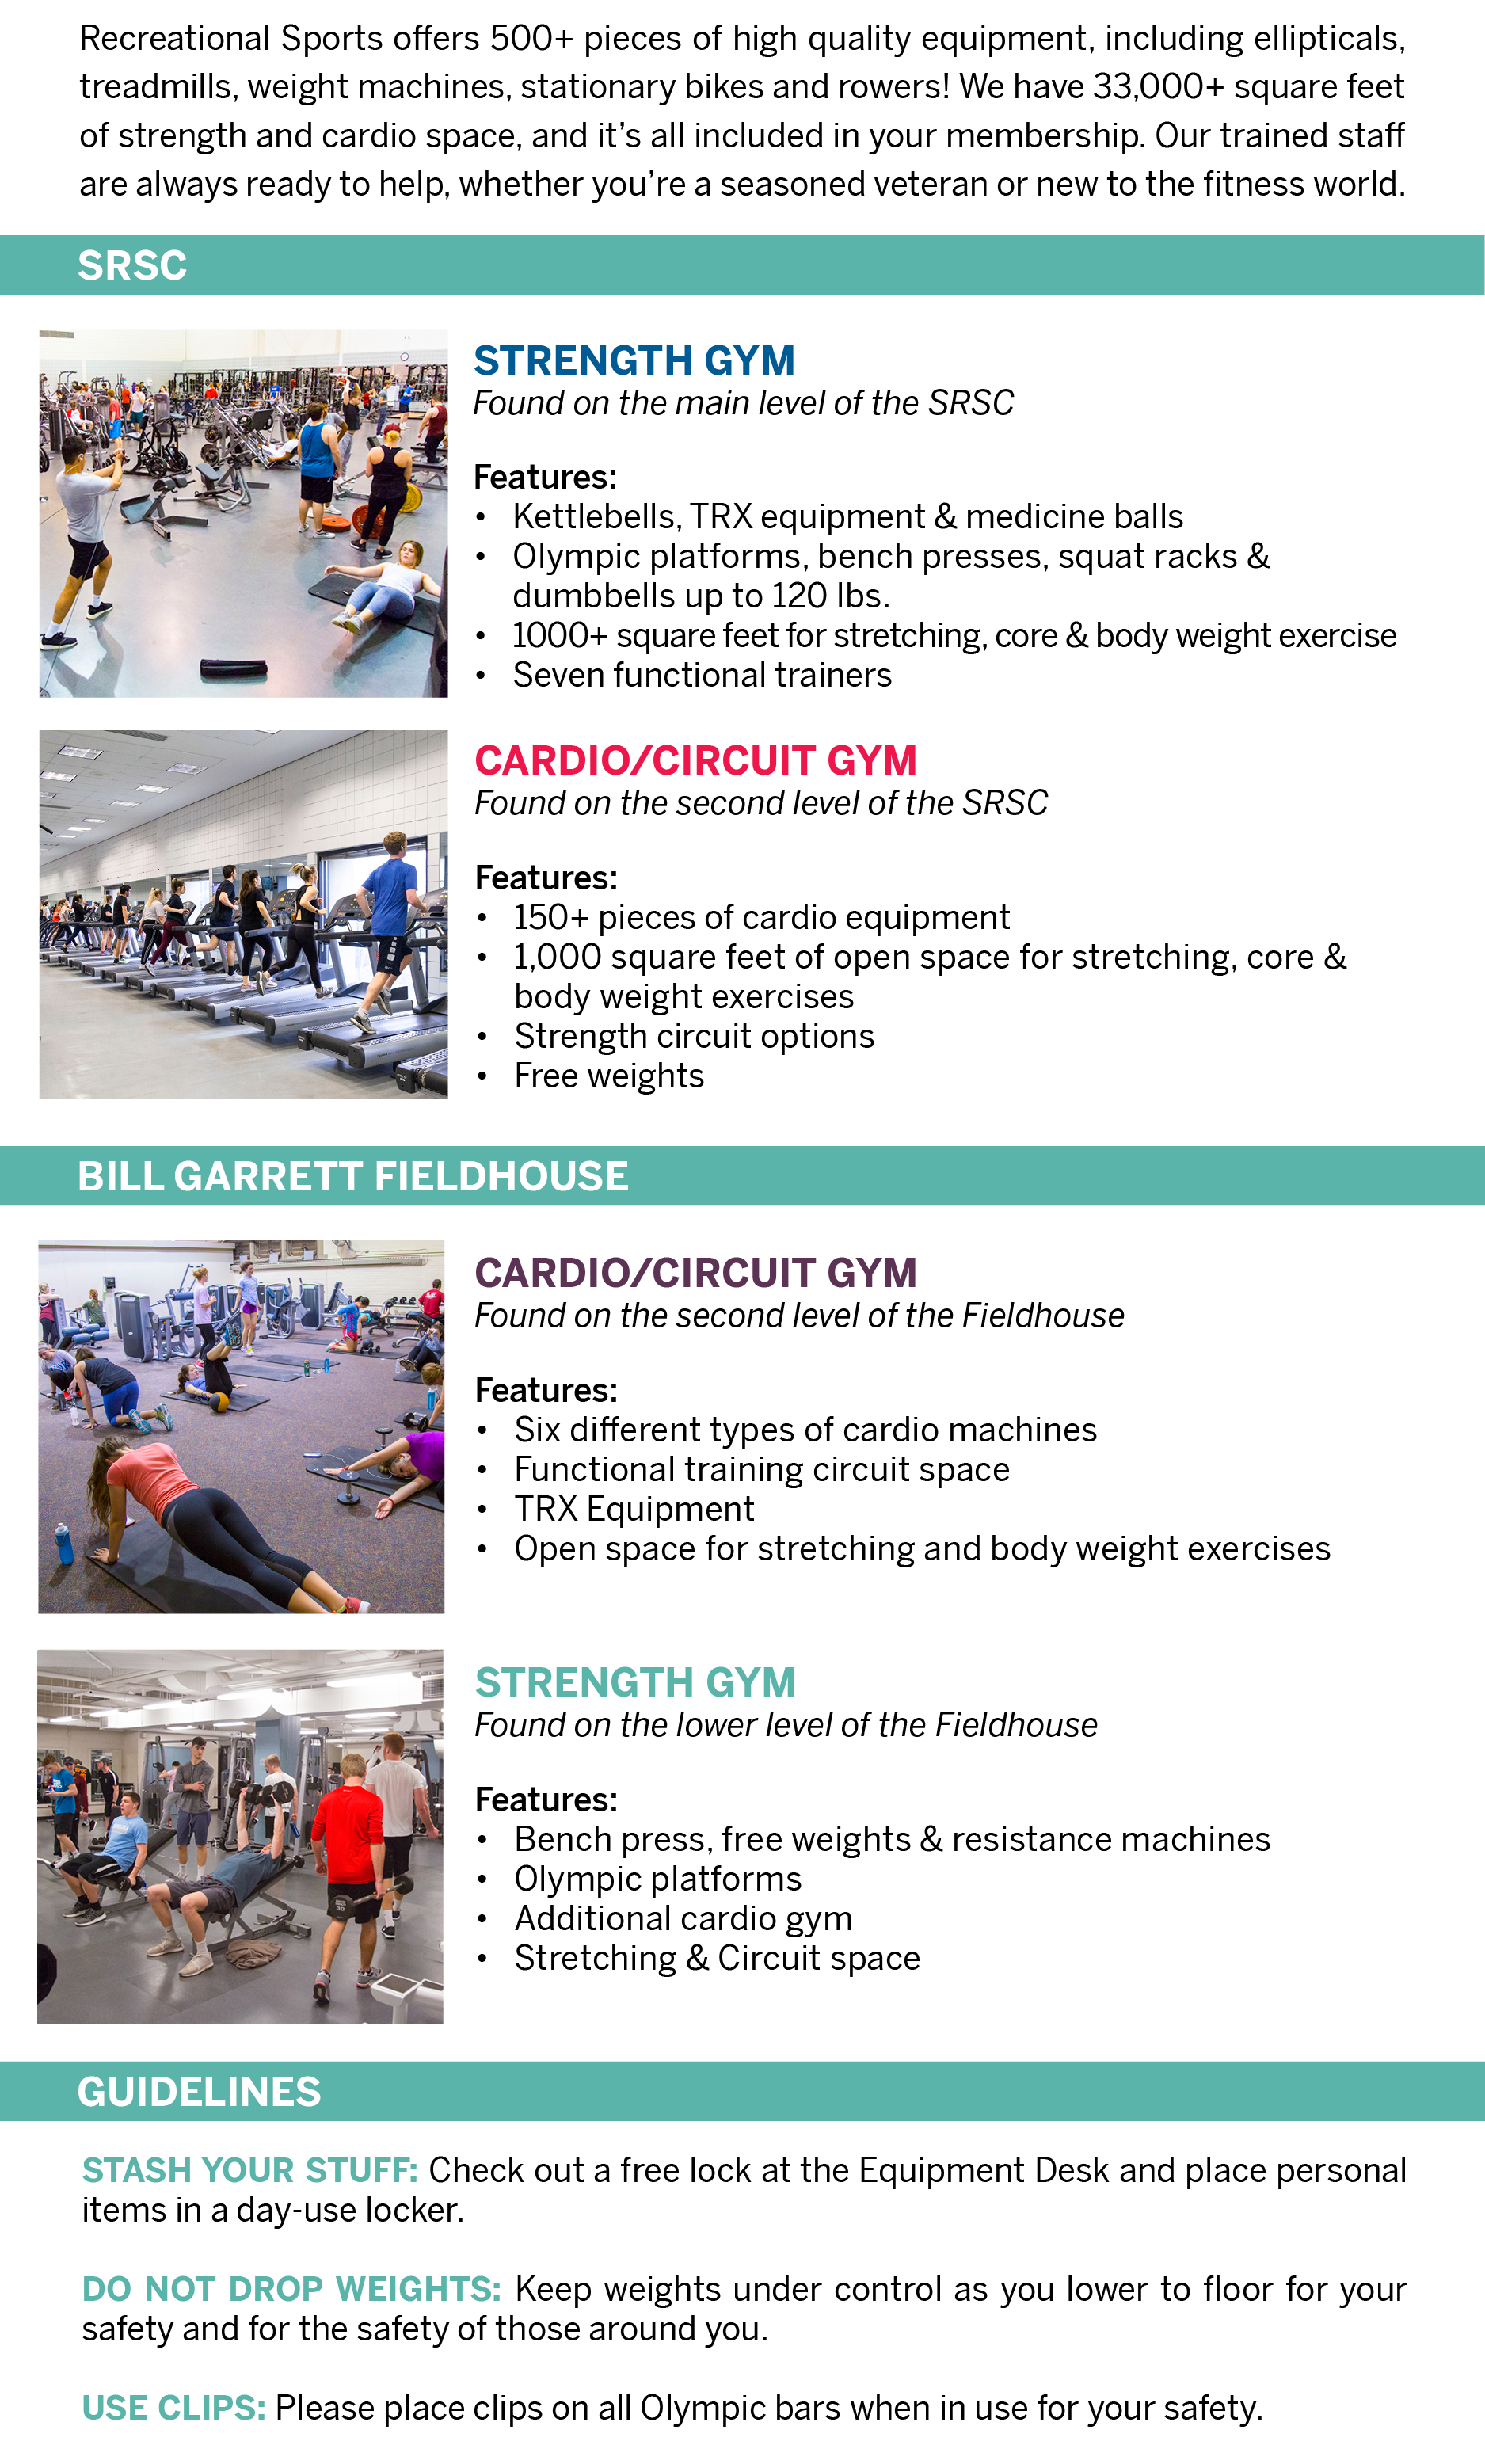 Recreational Sports offers 500+ pieces of high quality equipment, including ellipticals, treadmills, weight machines, stationary bikes, and rowers! We have 33,000+ square feet of strength and cardio space, and it's all included in your membership. Our trained staff are always ready to help, whether you're a seasoned veteran or new to the fitness world.  SRSC  STRENGTH GYM Found on the main level of the SRSC Features: Kettlebells, TRX equipment, & medicine balls  Olympic platforms, bench presses, squat racks, and dumbbells up to 120 lbs.  1000+ square feet for stretching, core, & body weight exercise  Seven functional trainers  CARDIO CIRCUIT GYM Found on the second level of the SRSC Features: 152 pieces of cardio equipment 1,000 square feet of open space for stretching, core, and body weight exercises Strength circuit options Free weights  CIRCUIT STUDIO Found on the main level of the SRSC Features: Open space for stretching, core, and body weight exercises Strength circuit options, TRX equipment Smaller space for those who prefer a semi-private setting   BILL GARRETT FIELDHOUSE:  CARDIO/CIRCUIT GYM Found on the second level of the Fieldhouse. Features: Six different types of cardio machines Functional training circuit space Open space for stretching and body weight exercises  STRENGTH GYM Found on the lower level of the Fieldhouse Features: Bench press, free weights, resistance machines Olympic platforms Additional cardio gym Stretching and Circuit space  GUIDELINES Stash Your Stuff: Check out a free lock at the Equipment Desk and place personal items in a day-use locker.   Do not Drop Weights: Keep weights under control as you lower to floor for your safety and for the safety of those around you.   Use Clips: Please place clips on all Olympic bars when in use for your safety.